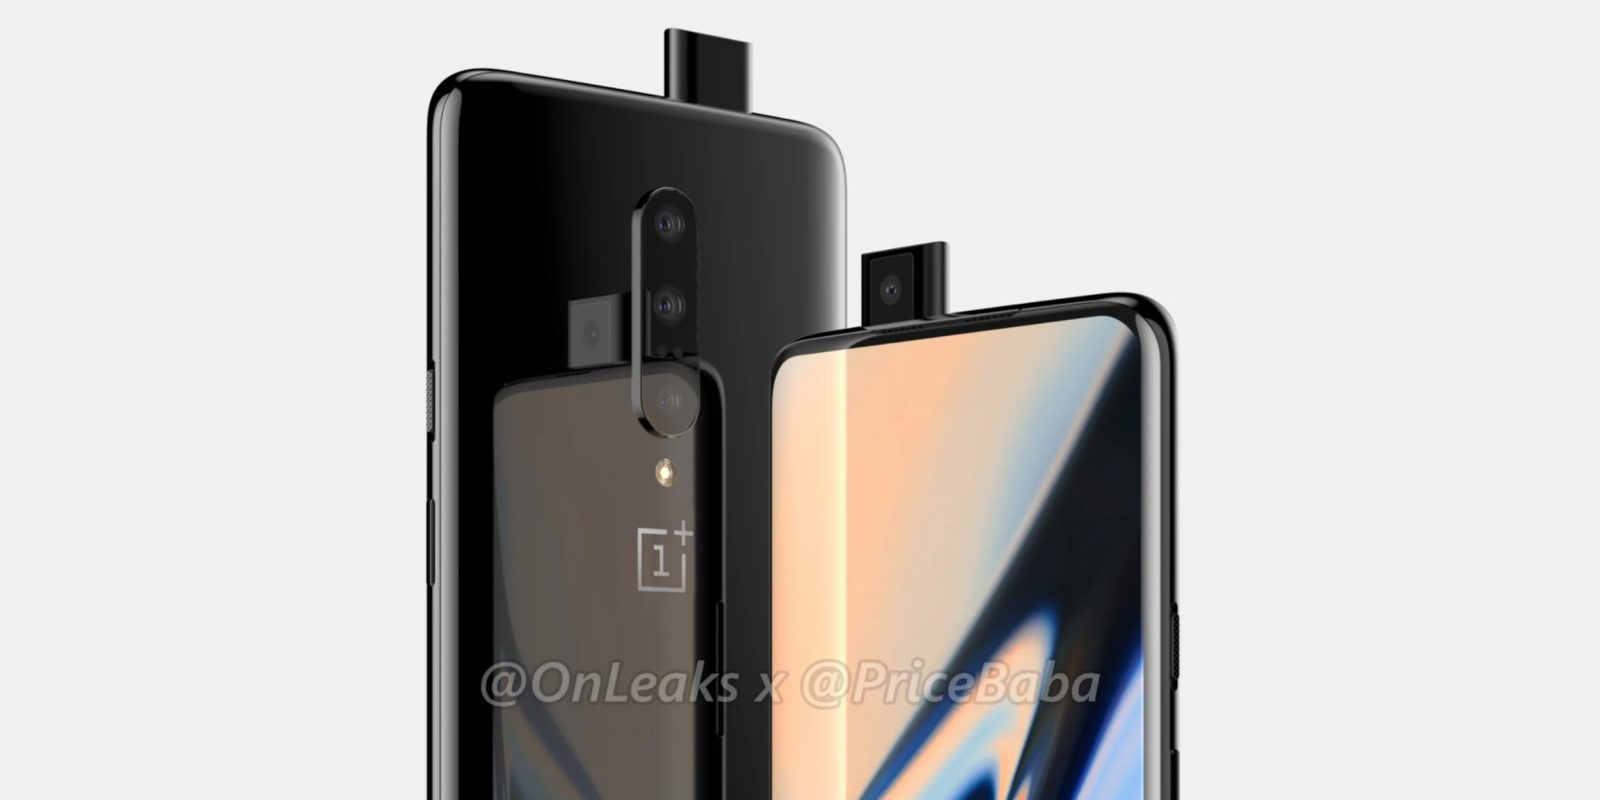 OnePlus 7 Pro to include QHD+ 90Hz display, bigger battery - 9to5Google